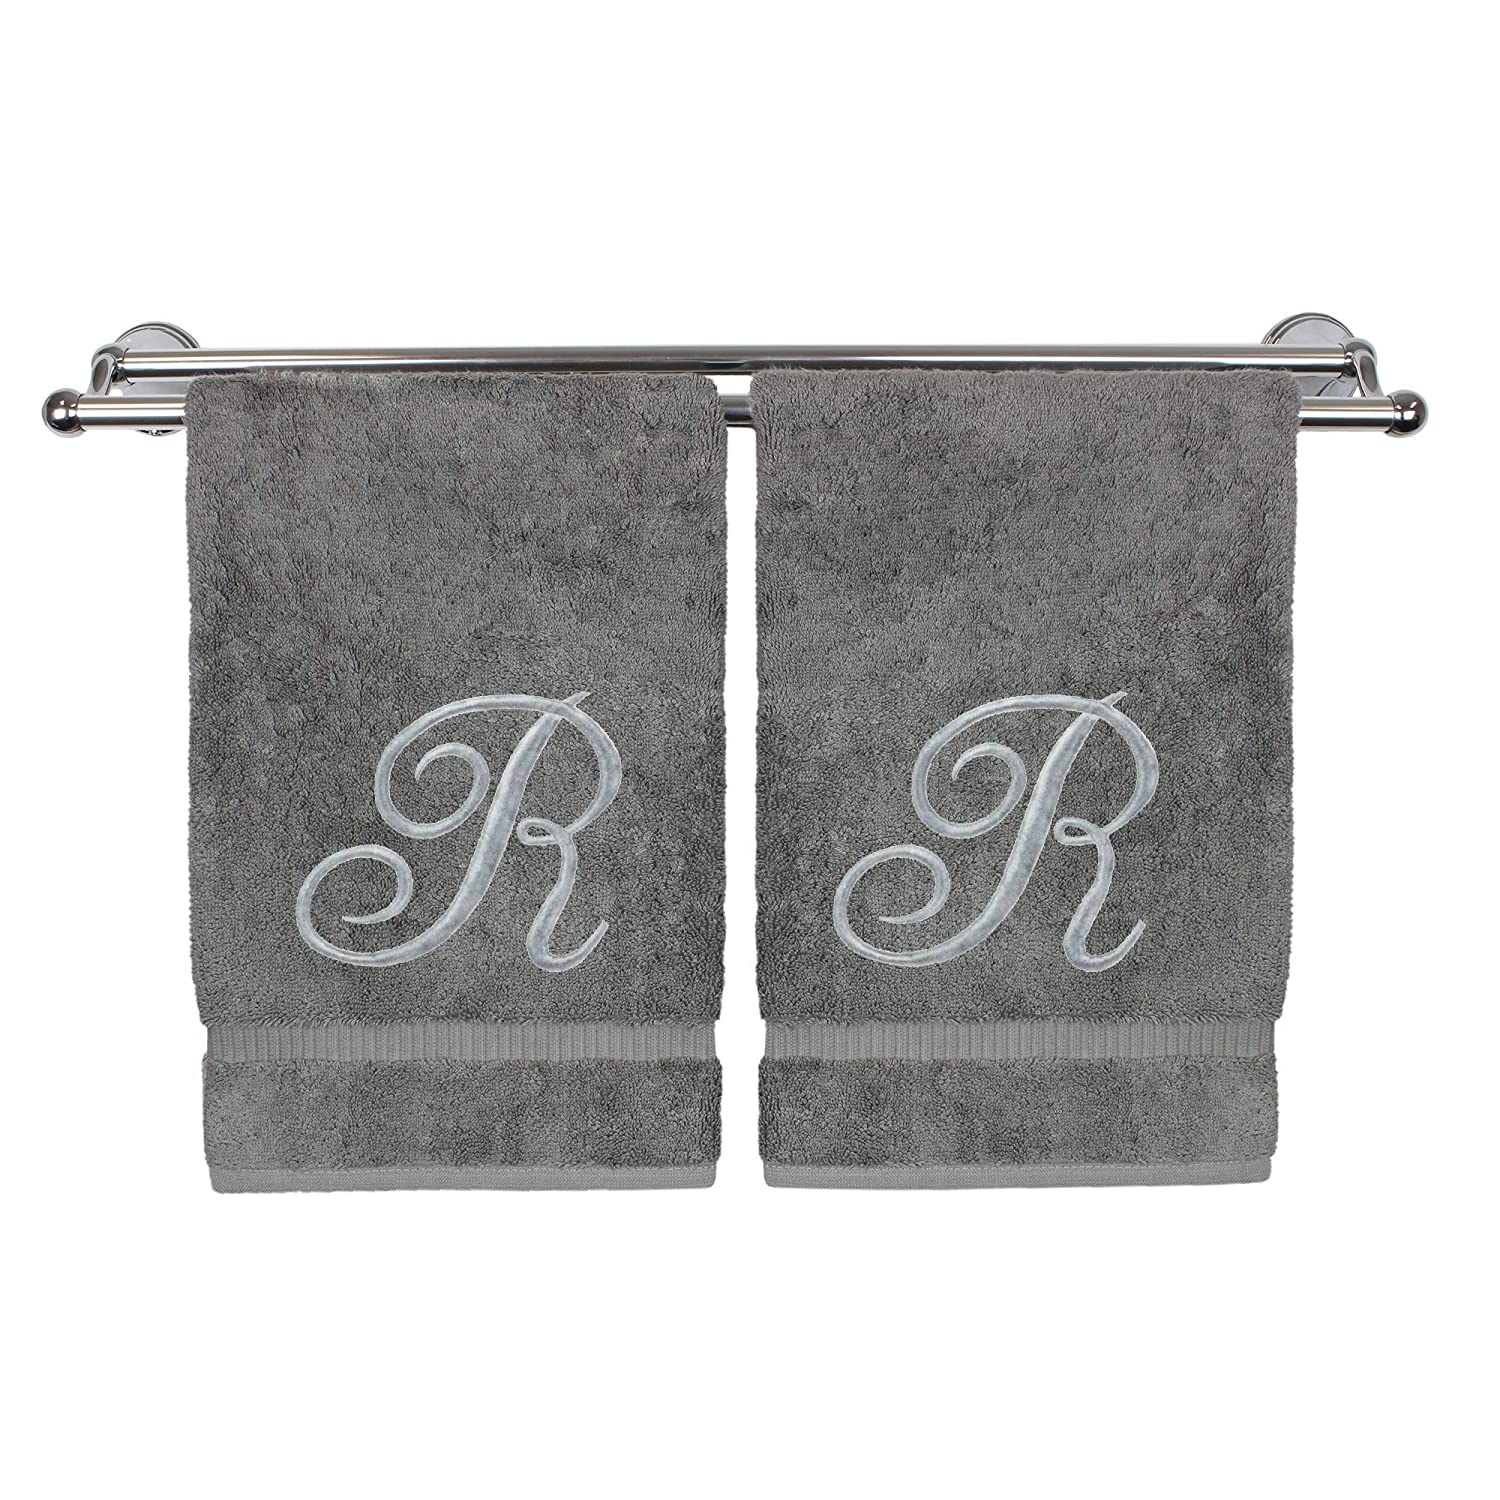 Monogrammed Hand Towel, Personalized Gift, 16 x 30 Inches - Set of 2 - Silver Embroidered Towel - Extra Absorbent 100% Turkish Cotton- Soft Terry Finish - for Bathroom, Kitchen and Spa- Script R Gray